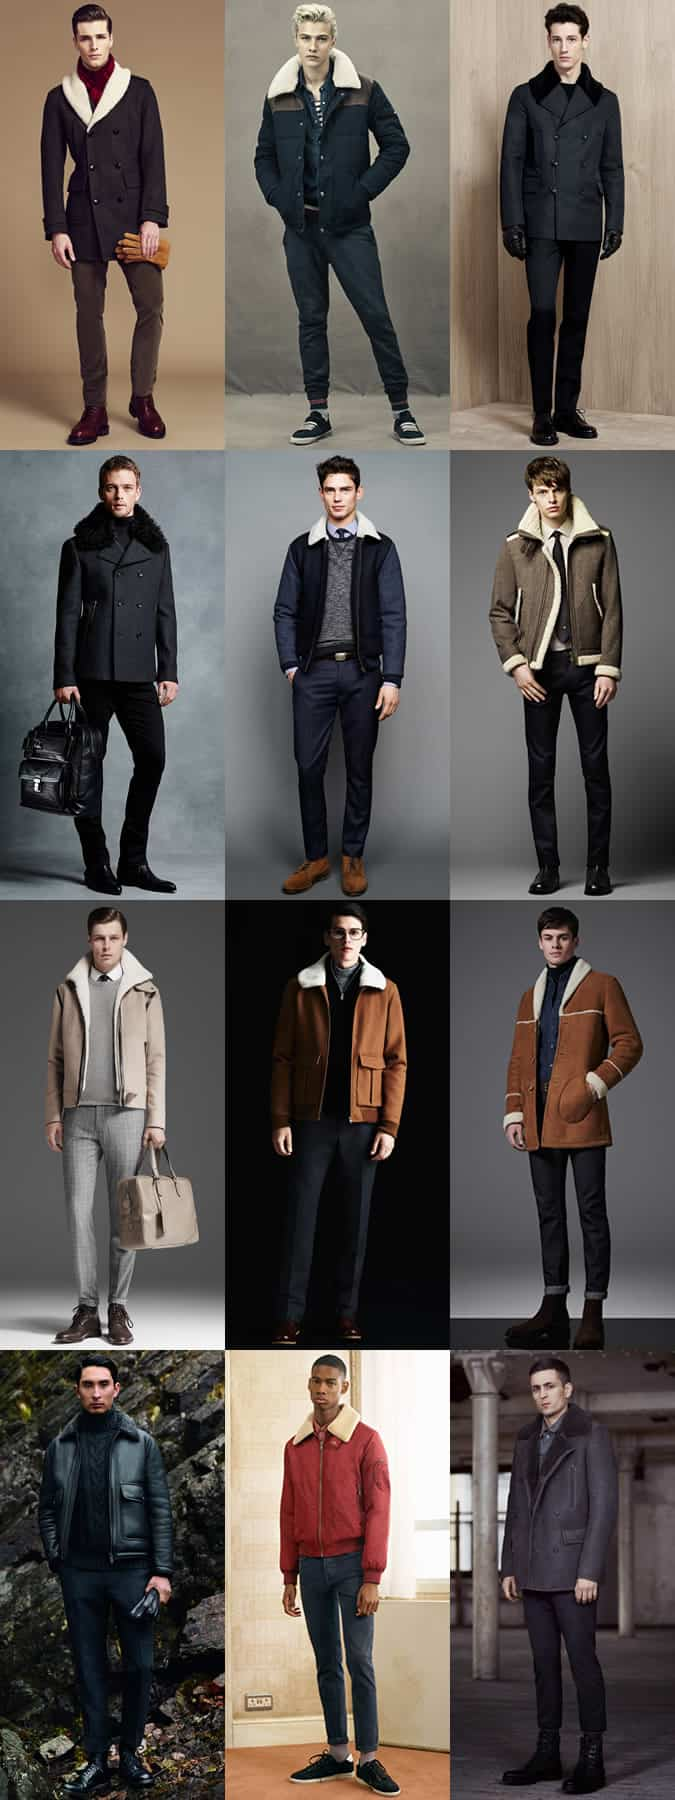 Men's Shearling Jackets Outfit Inspiration Lookbook